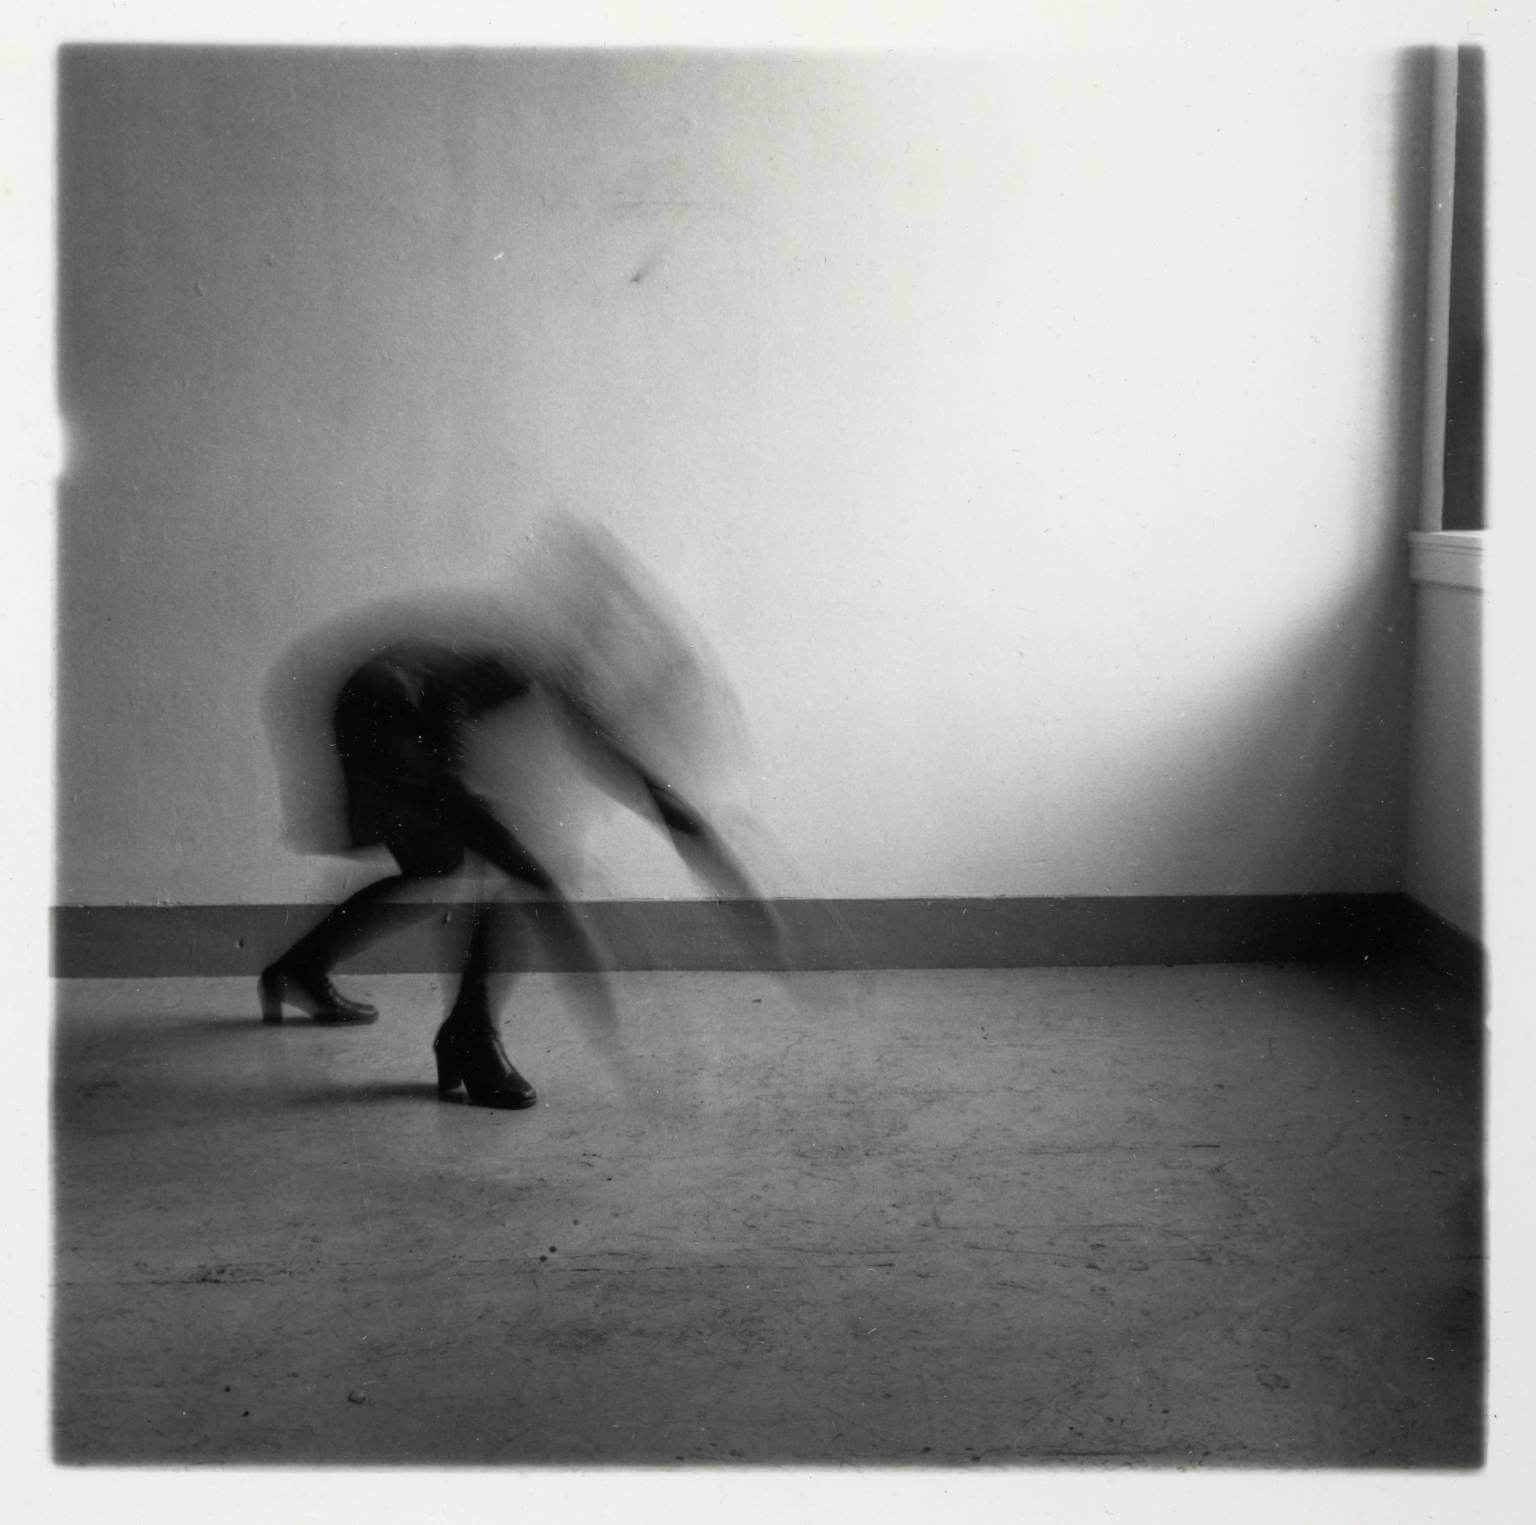 Space², Providence, Rhode Island, 1975 1978 1975 8 By Francesca Woodman 1958 1981